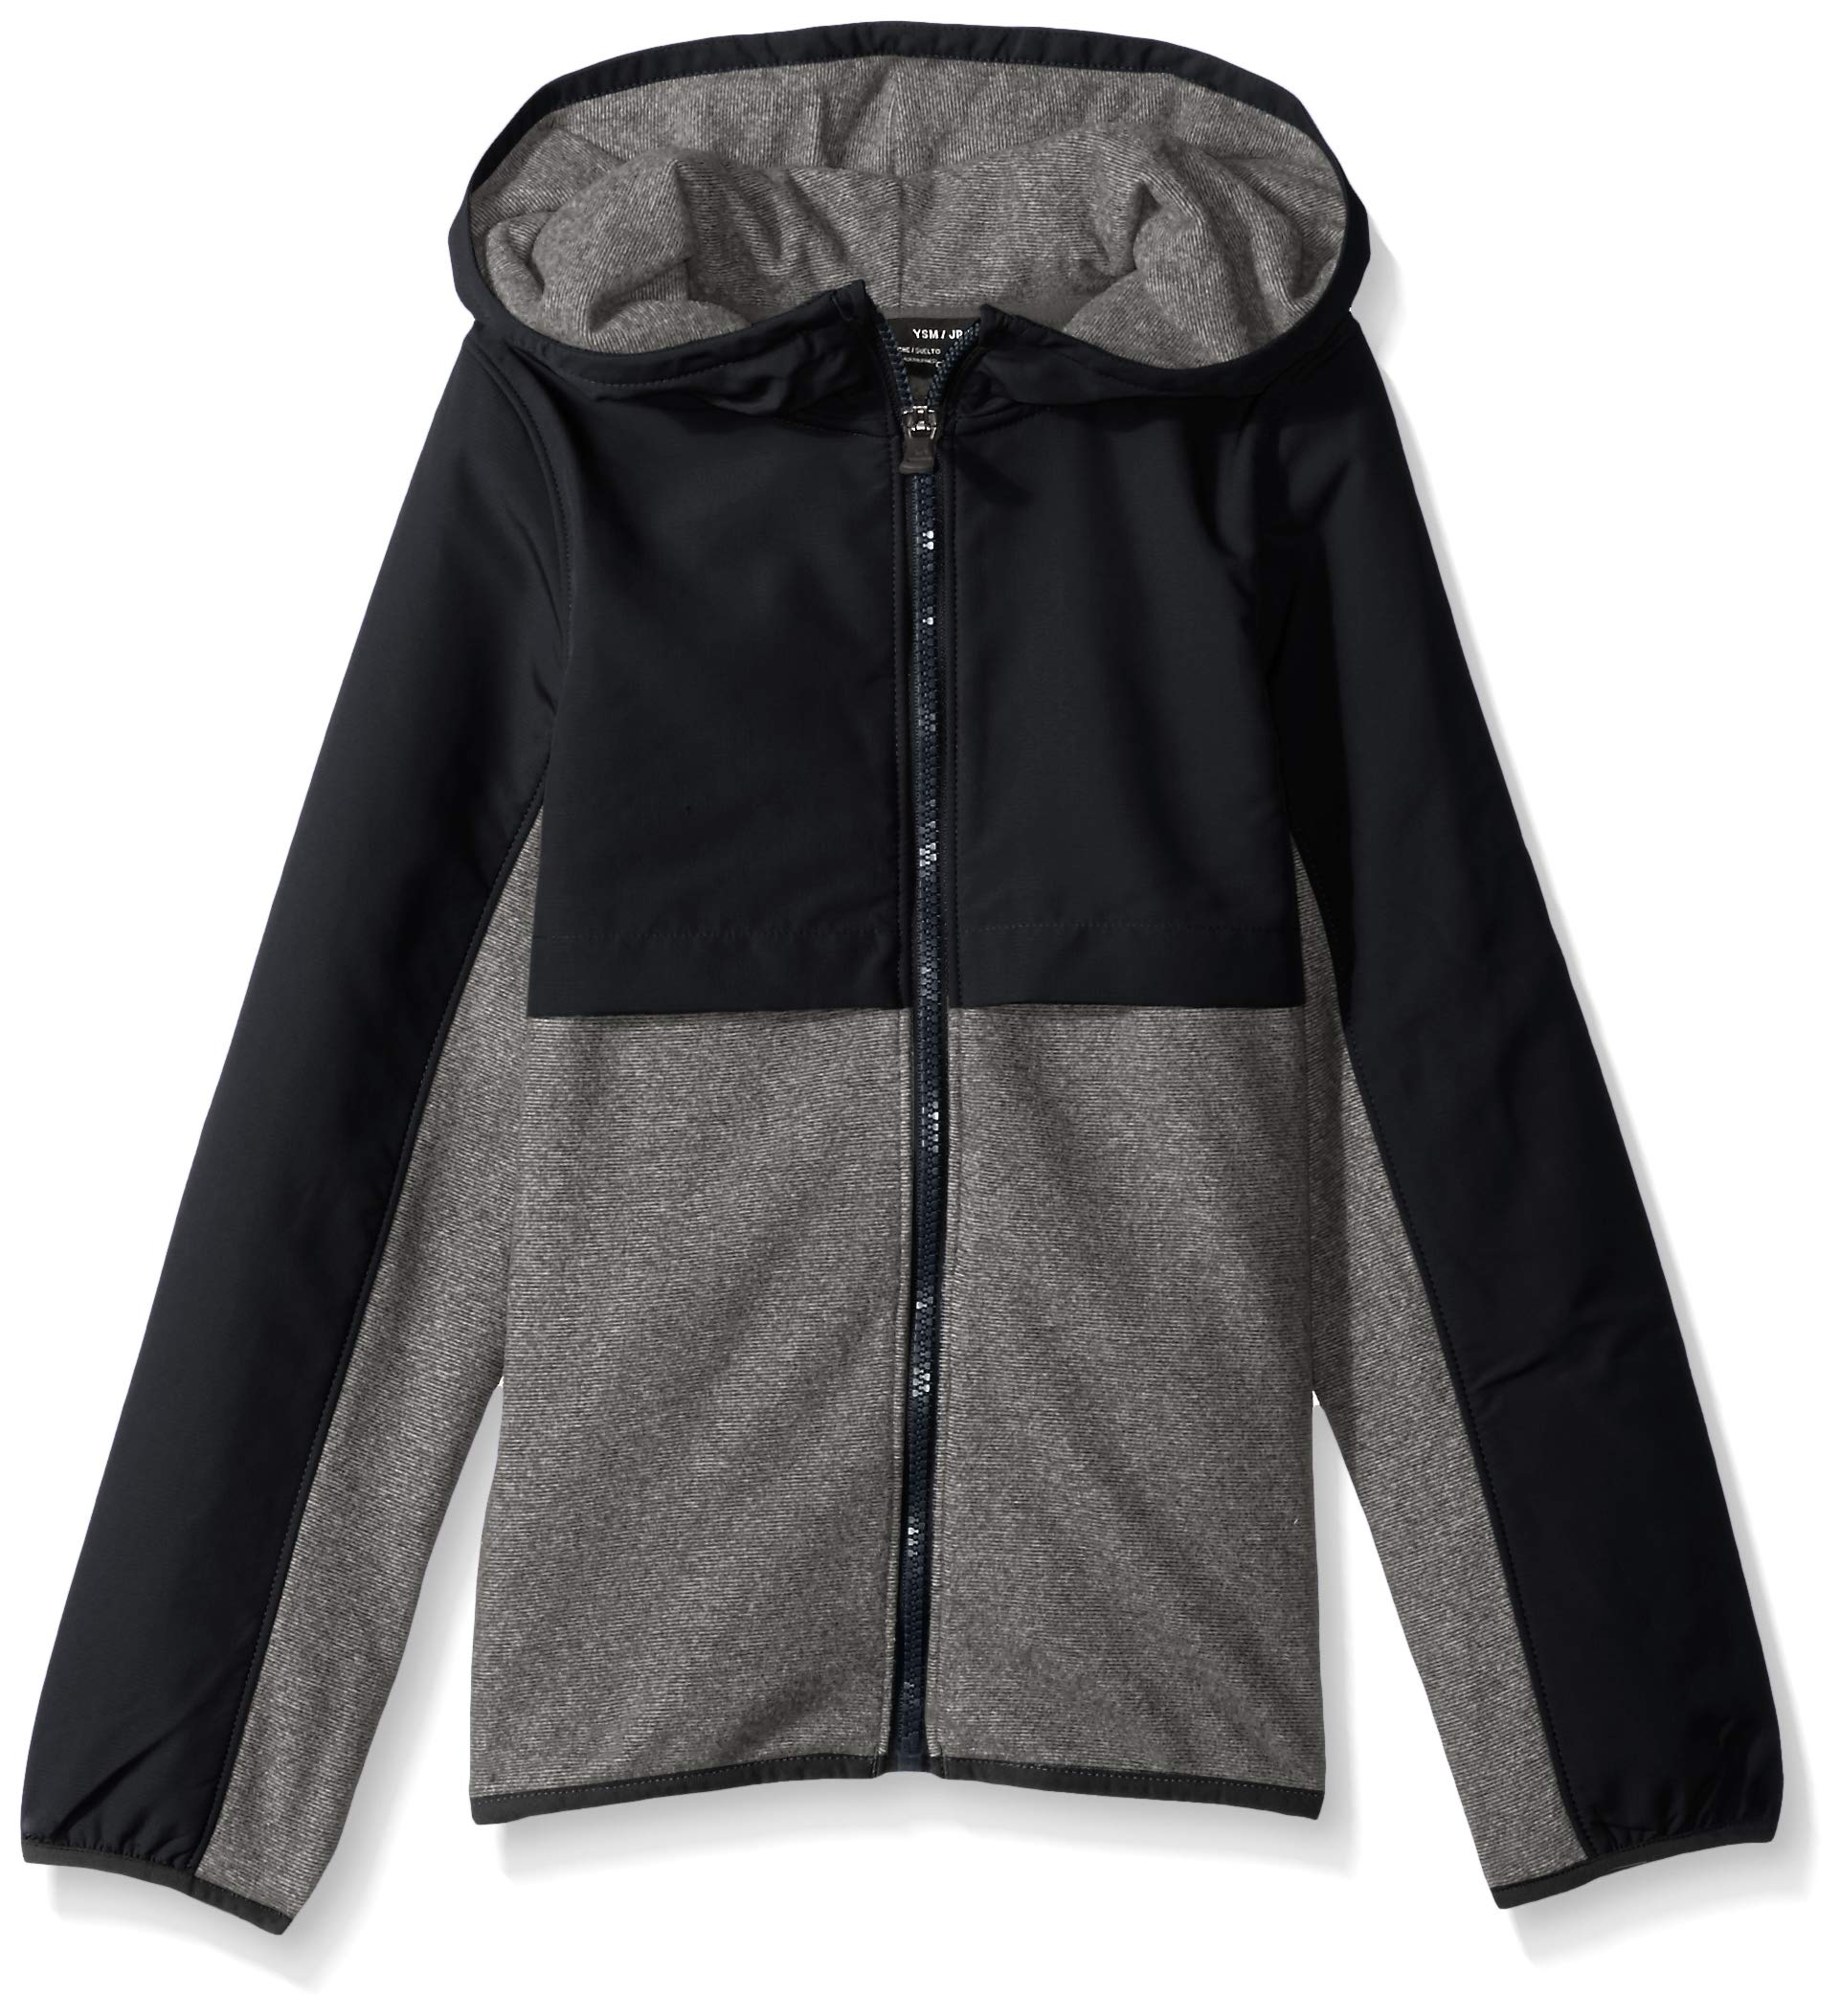 Under Armour Girls Phenom Fleece Full Zip Hoodie,Black /Black, Youth Large by Under Armour